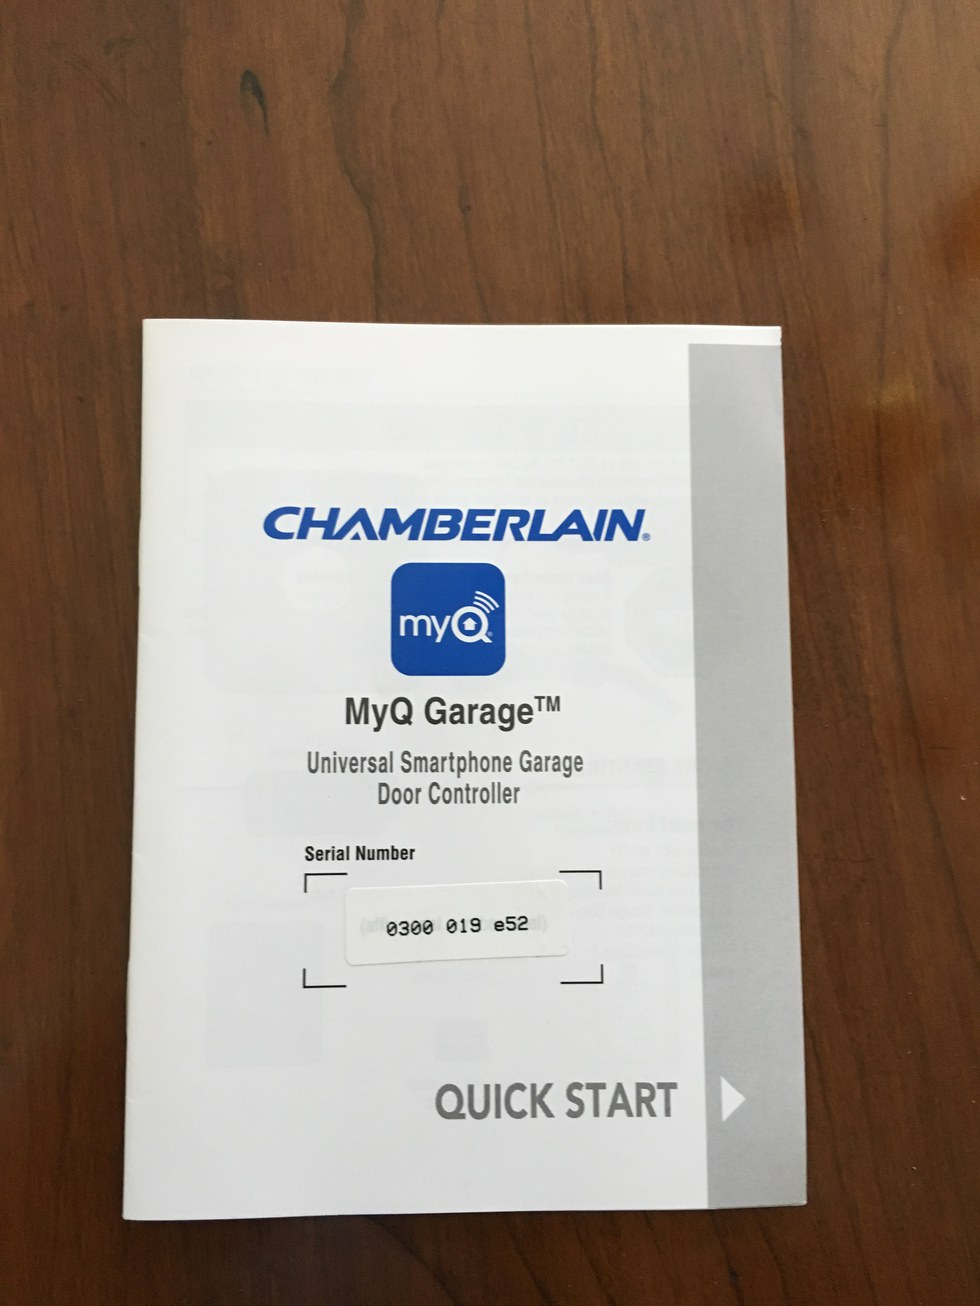 Chamberlain MyQ Garage Quick Start Guide